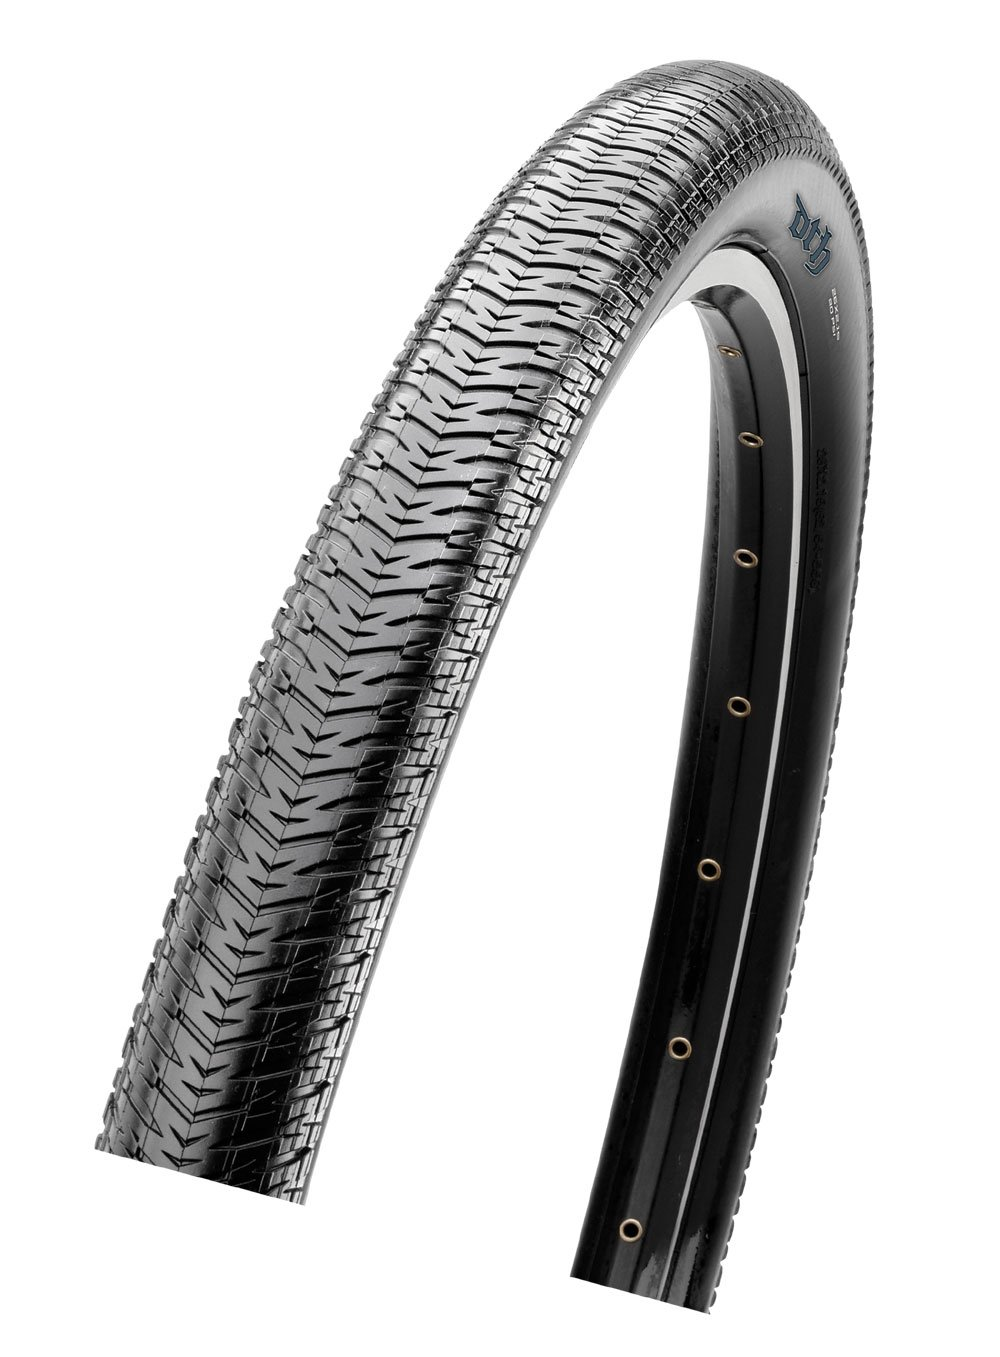 Maxxis Dth Folding Dual Compound Silkworm Tyre